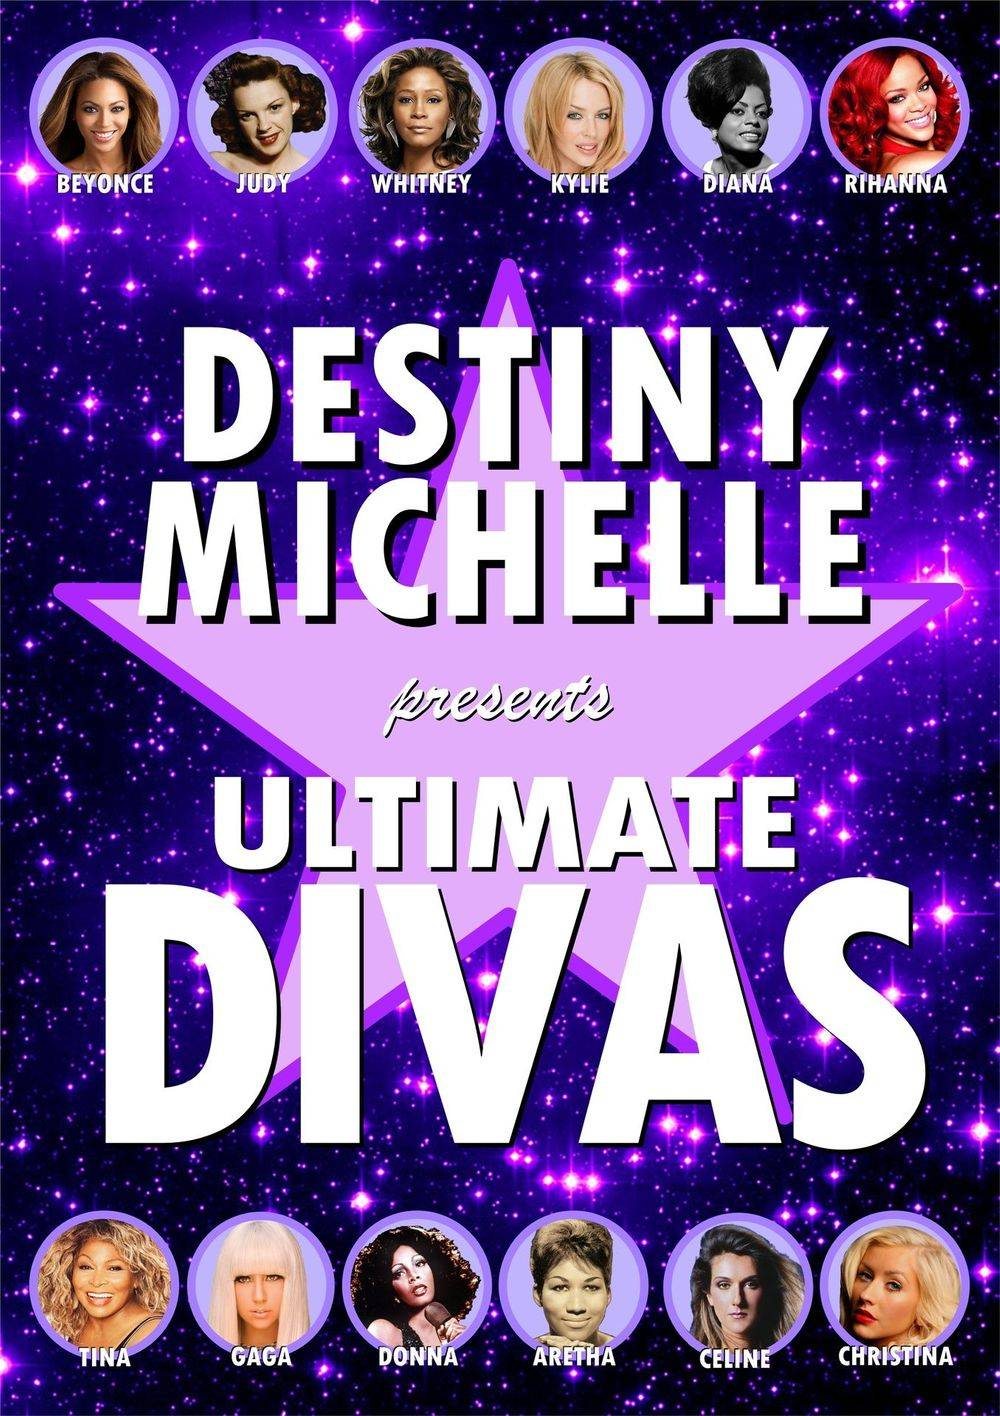 Destiny Michelle - ULTIMATE DIVAS Tribute